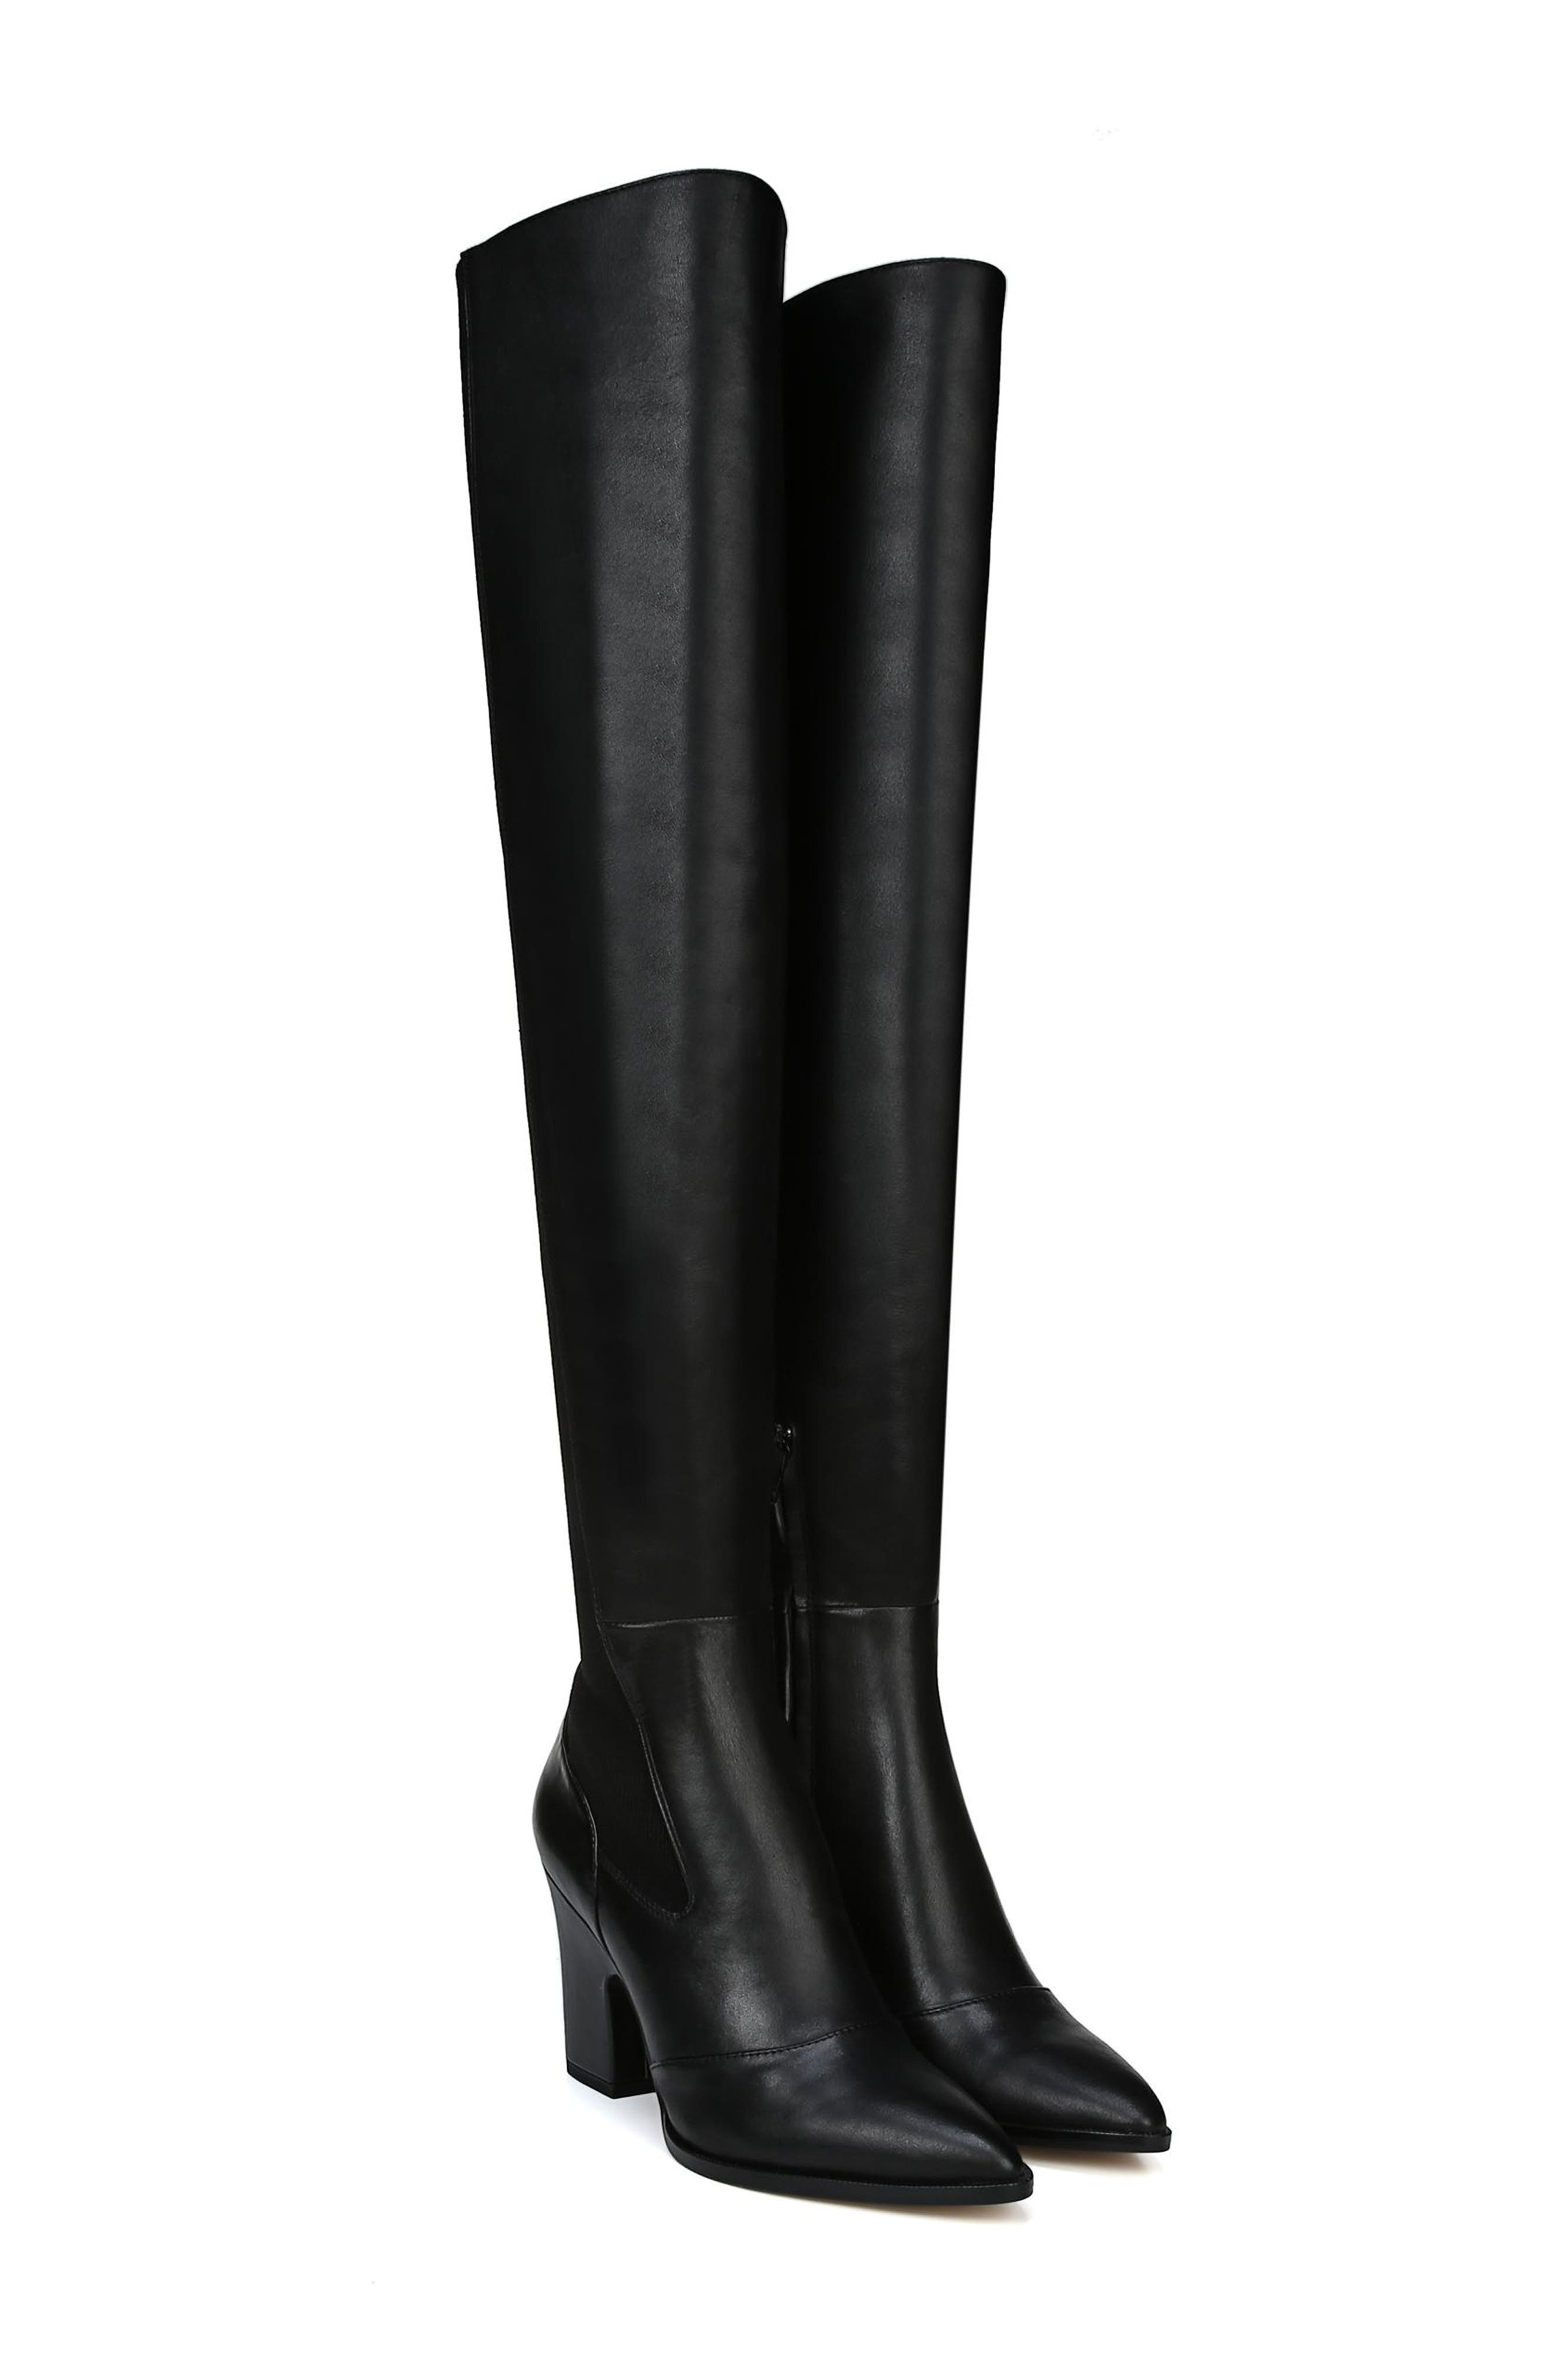 Natasha Over the Knee Boot,                             Alternate thumbnail 9, color,                             BLACK LEATHER